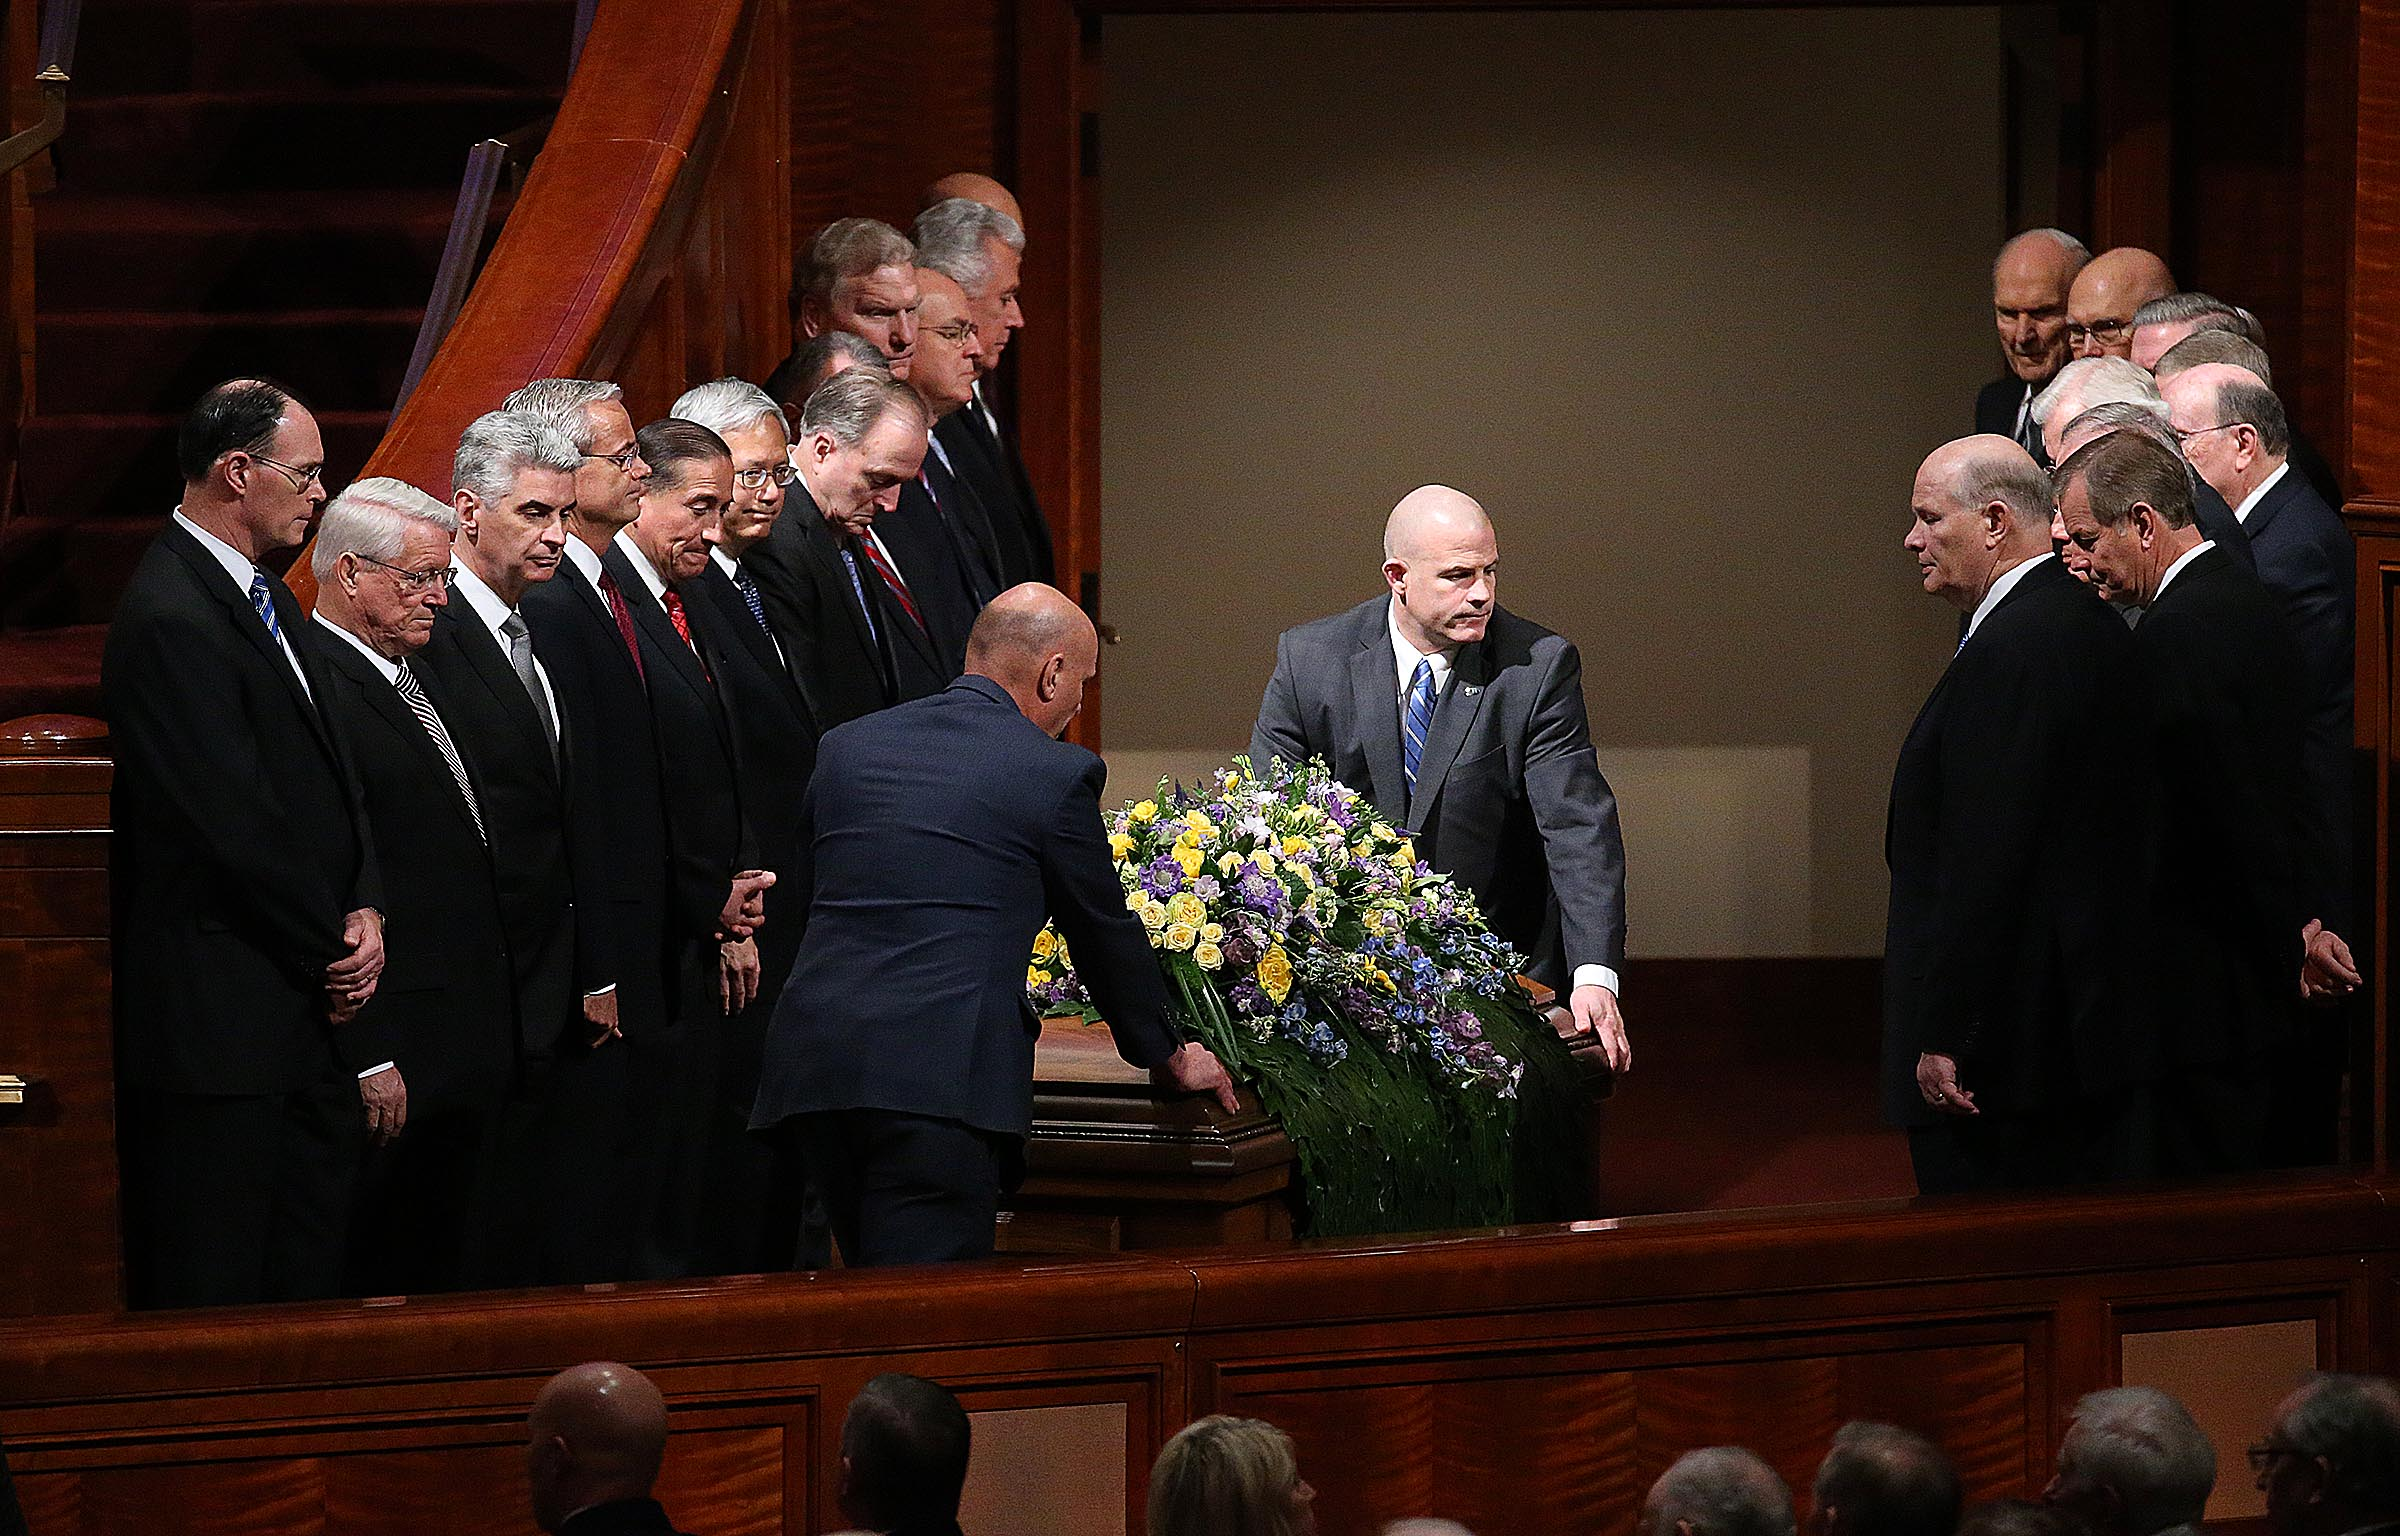 President Thomas S. Monson's casket is moved out of the Conference Center in Salt Lake City on Friday, Jan. 12, 2018.